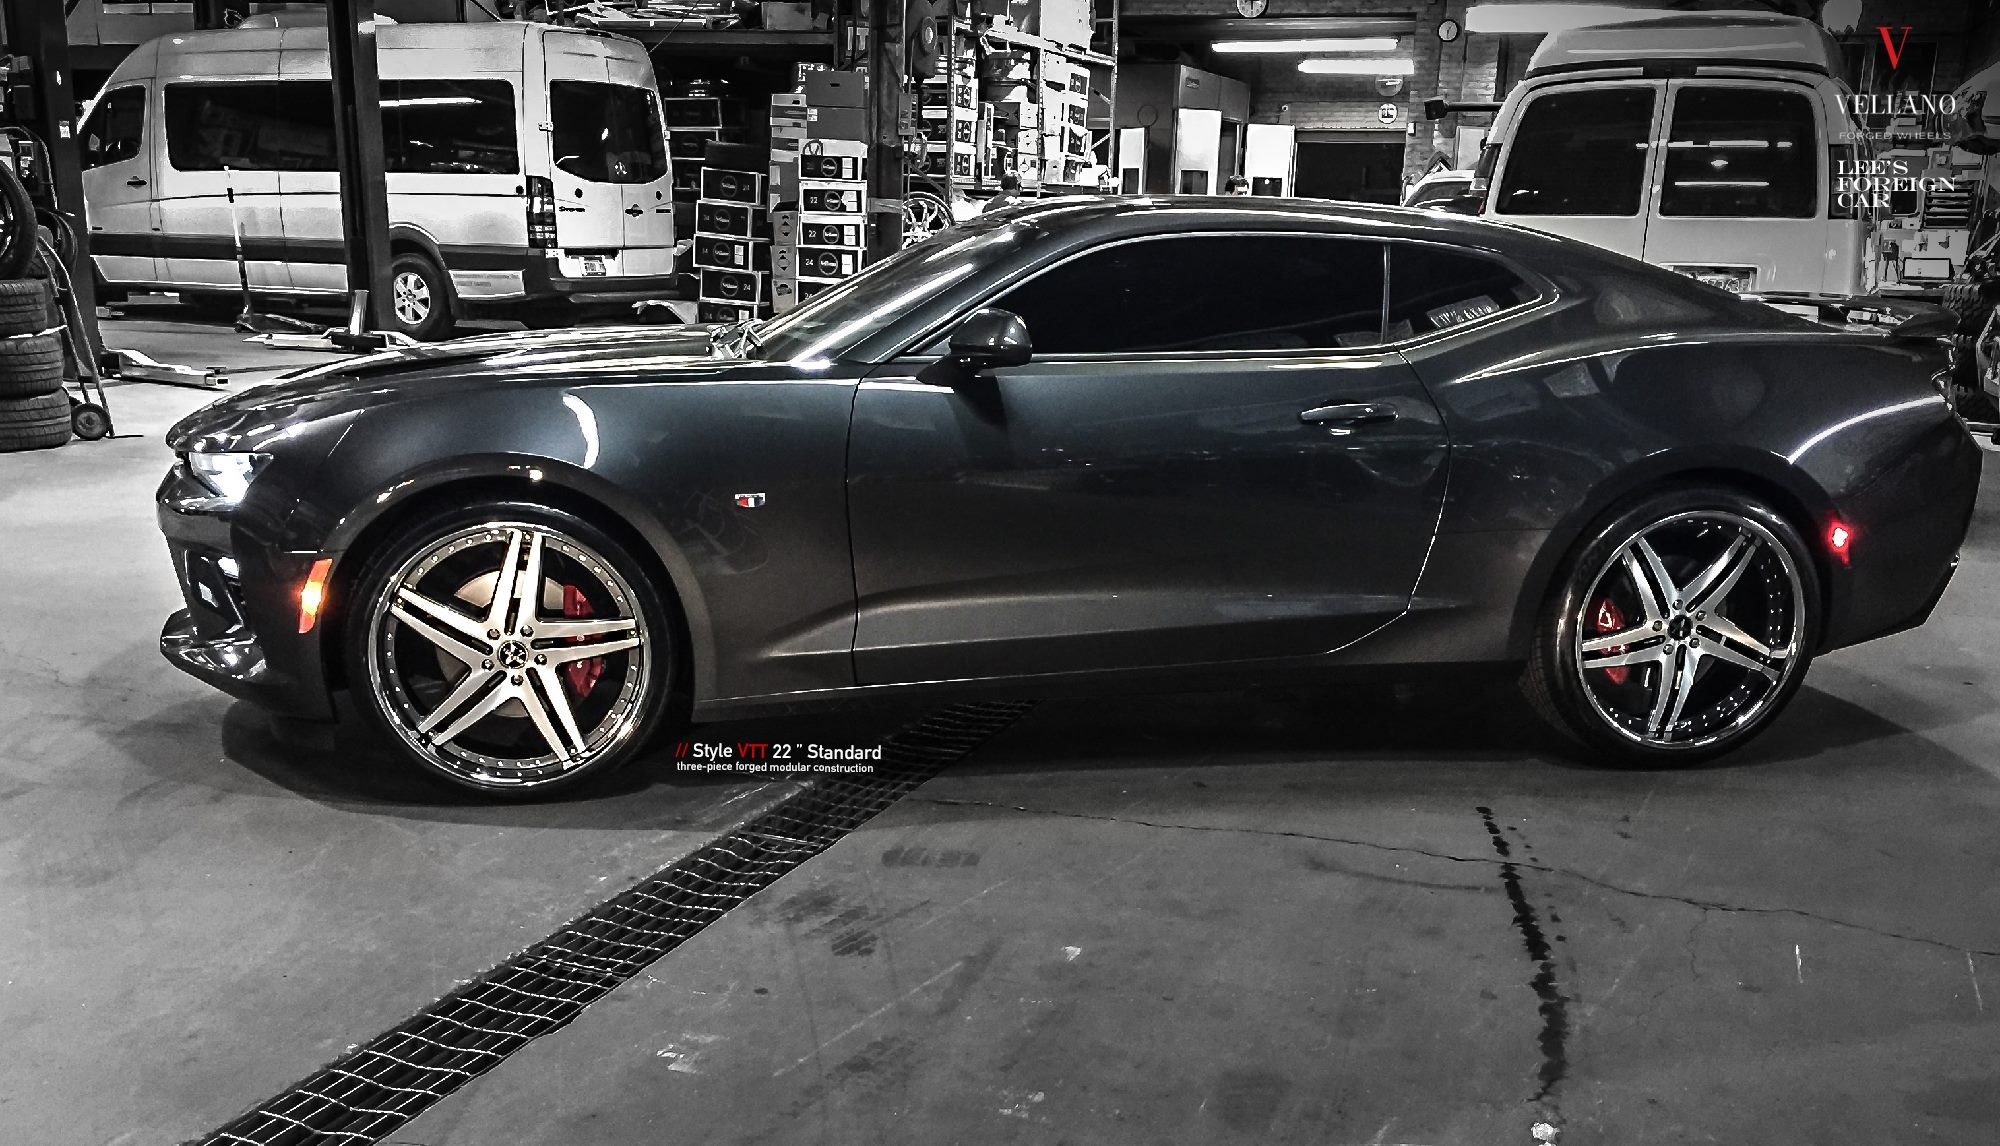 Black Chevy Camaro SS with Chrome 22 Inch Vellano Rims - Photo by Vellano